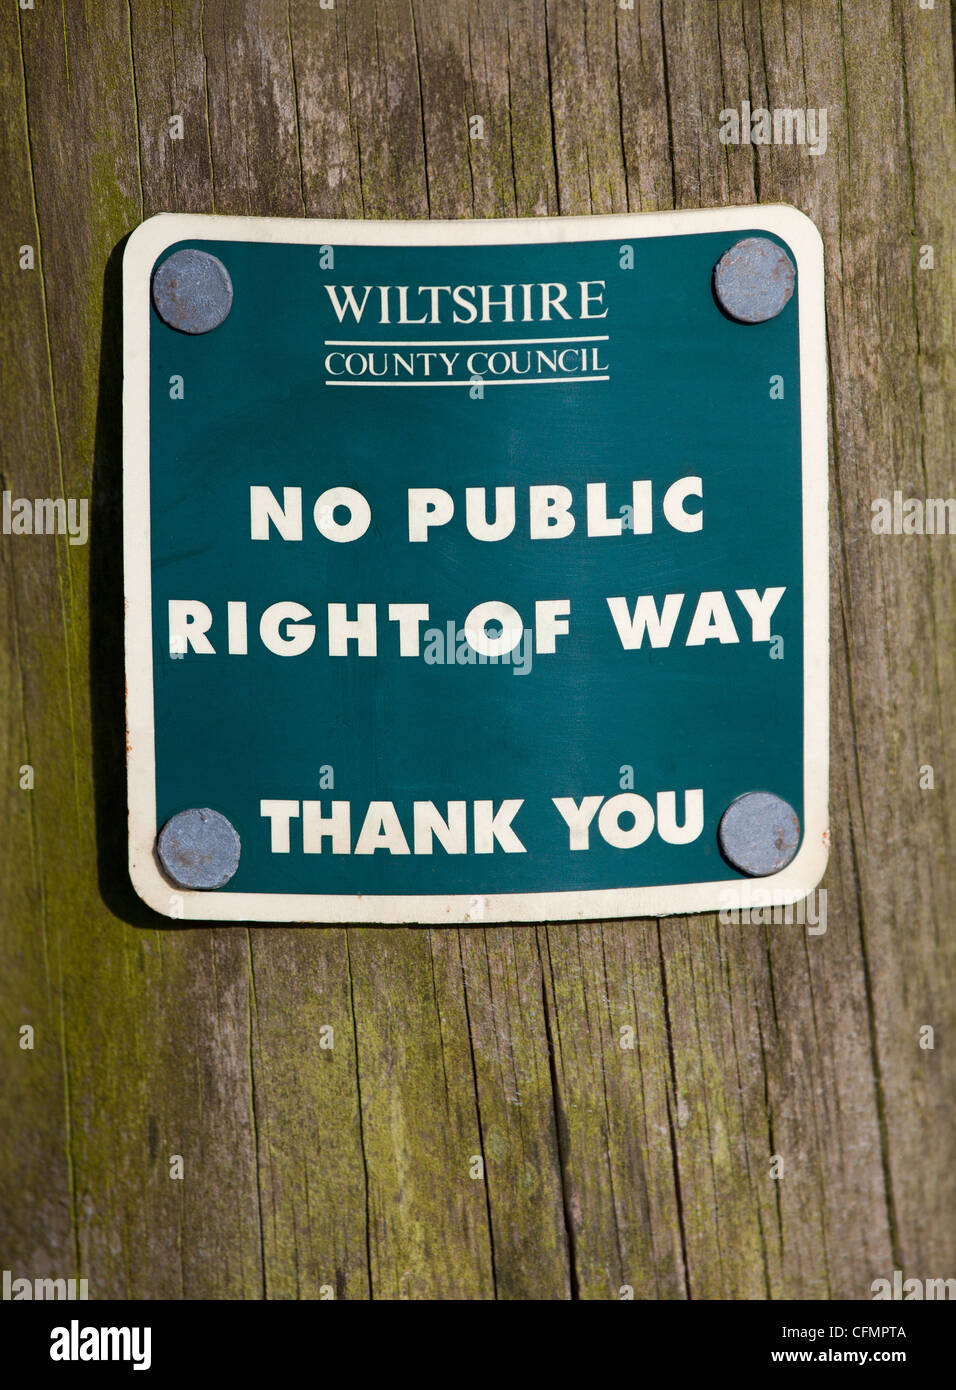 No Public Right of Way Sign - Stock Image